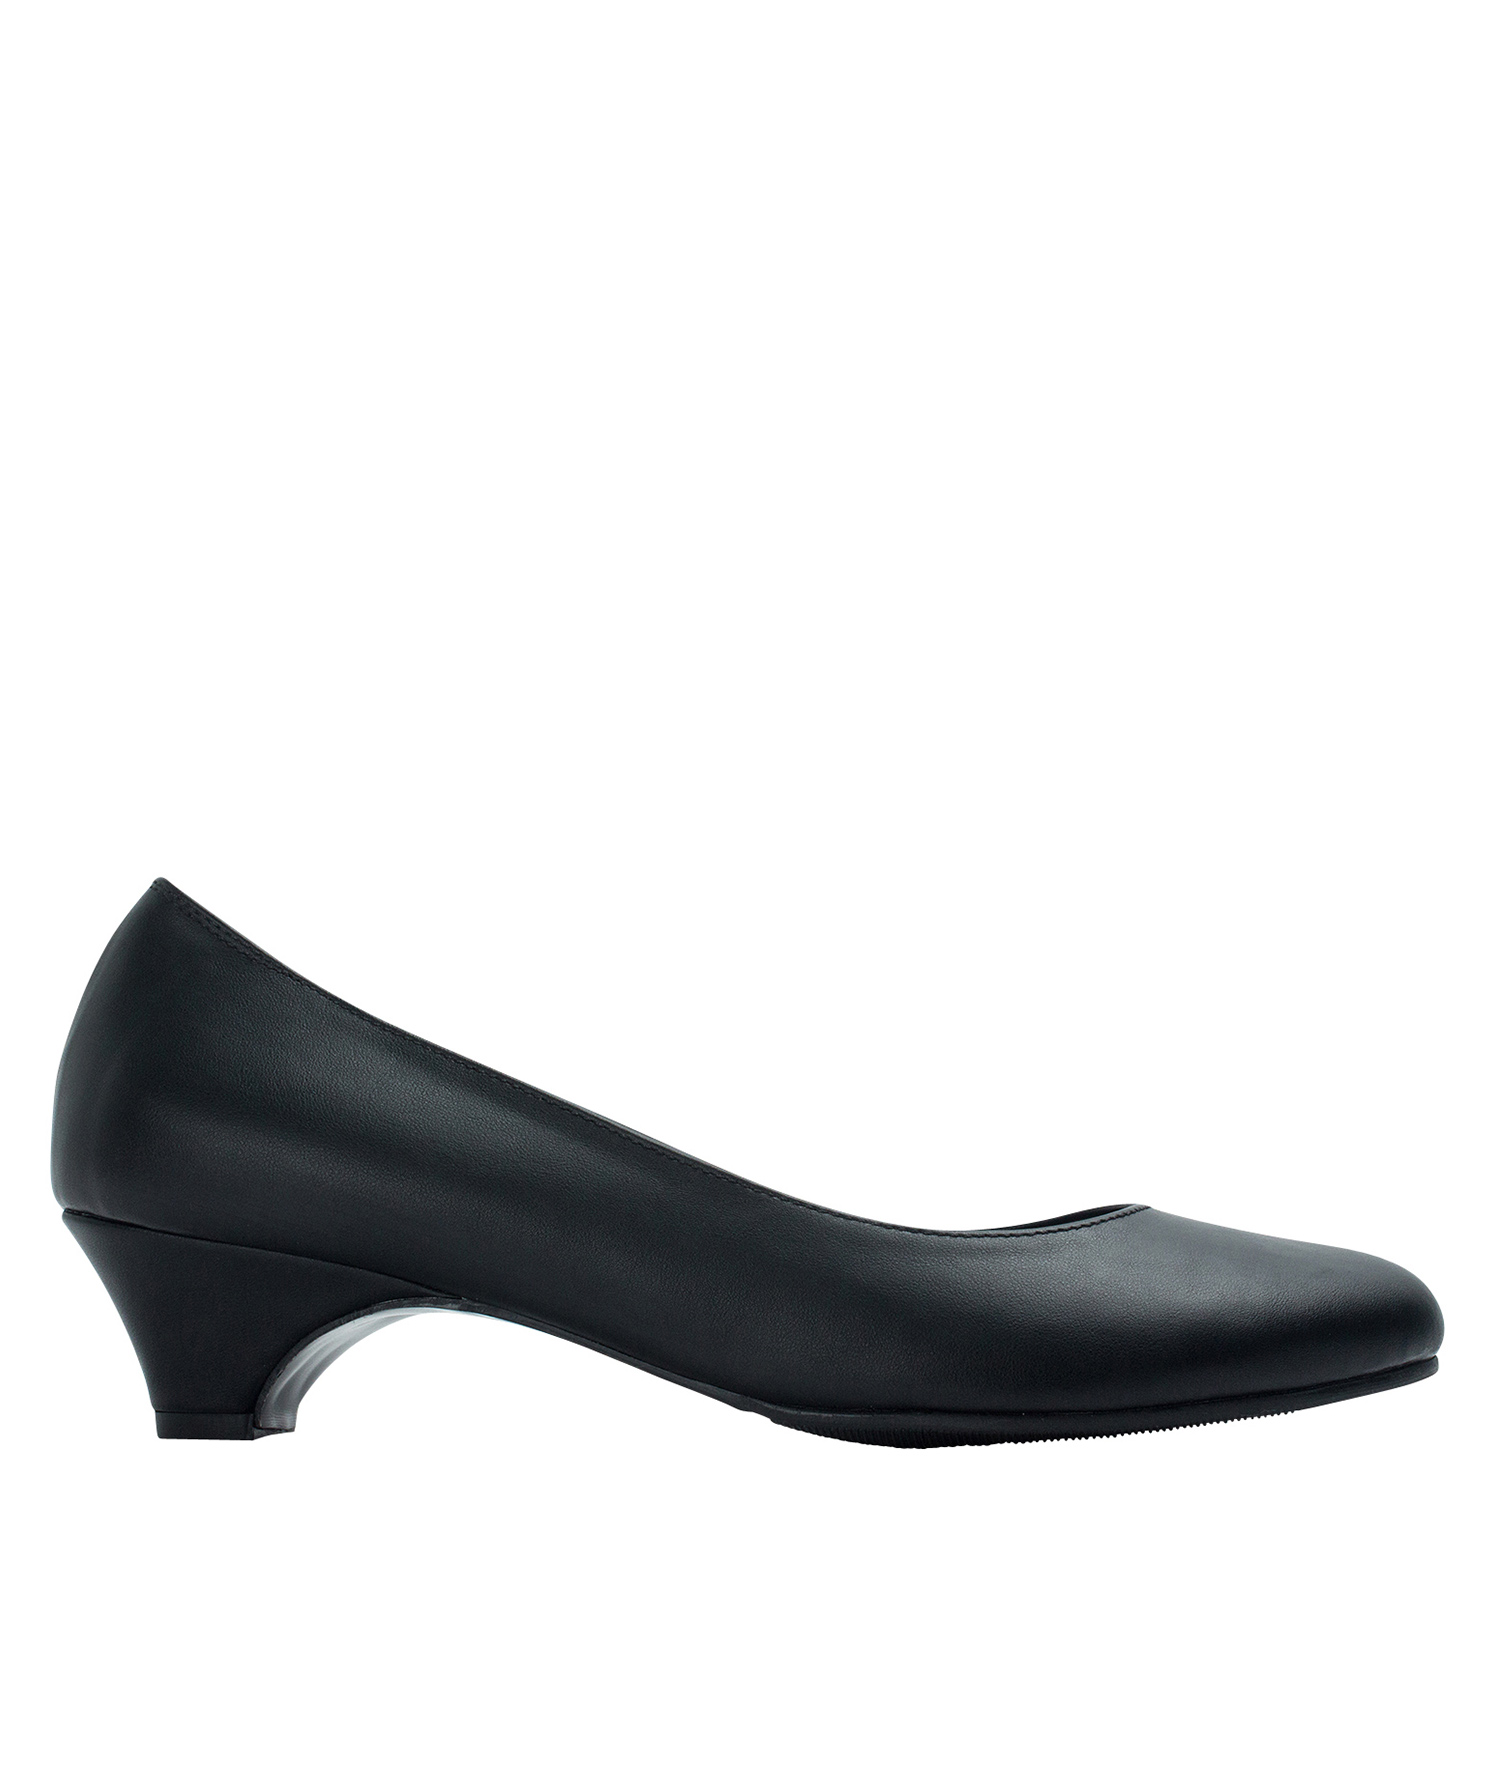 AnnaKastle Womens Classic Black Low Heel Pumps